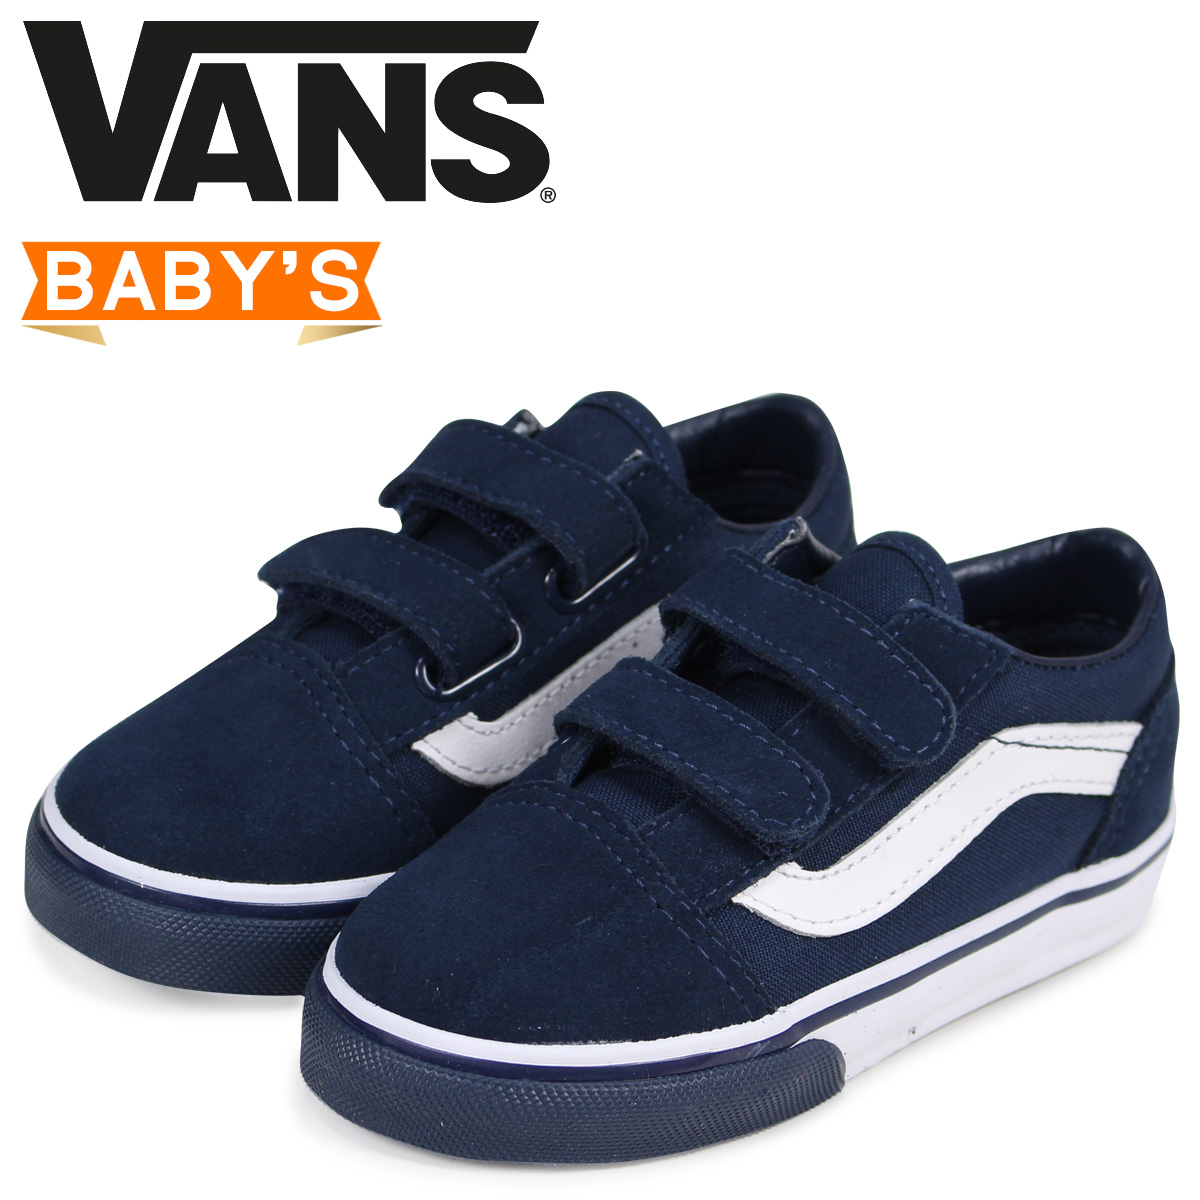 7e417adf18 Vans old school sneakers baby VANS station wagons TODDLER OLD SKOOL VELCRO  VN0A344KQ7I black  2 16 Shinnyu load